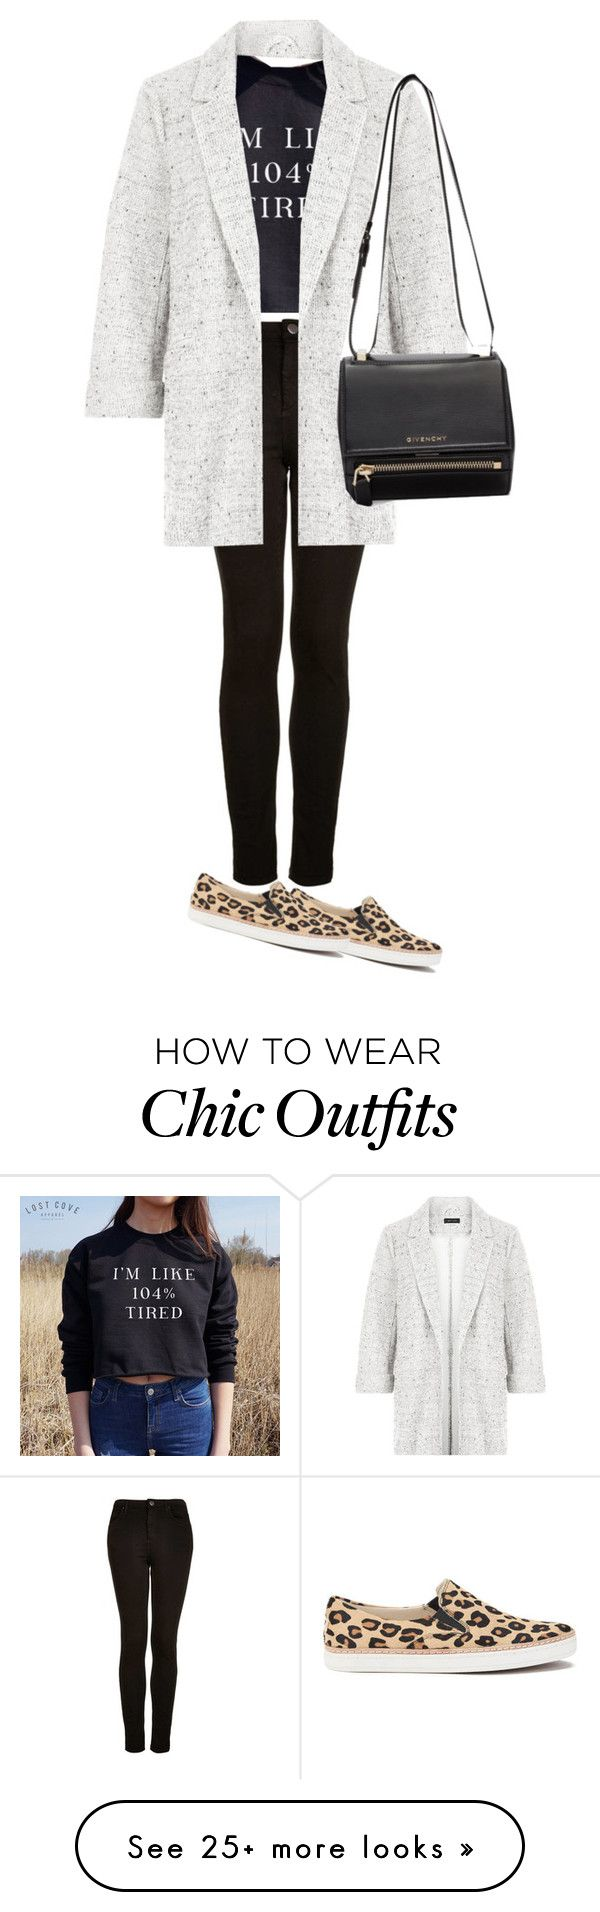 """""""Casual chic"""" by explorer-14732036237 on Polyvore featuring Topshop, New Look, UGG Australia and Givenchy"""